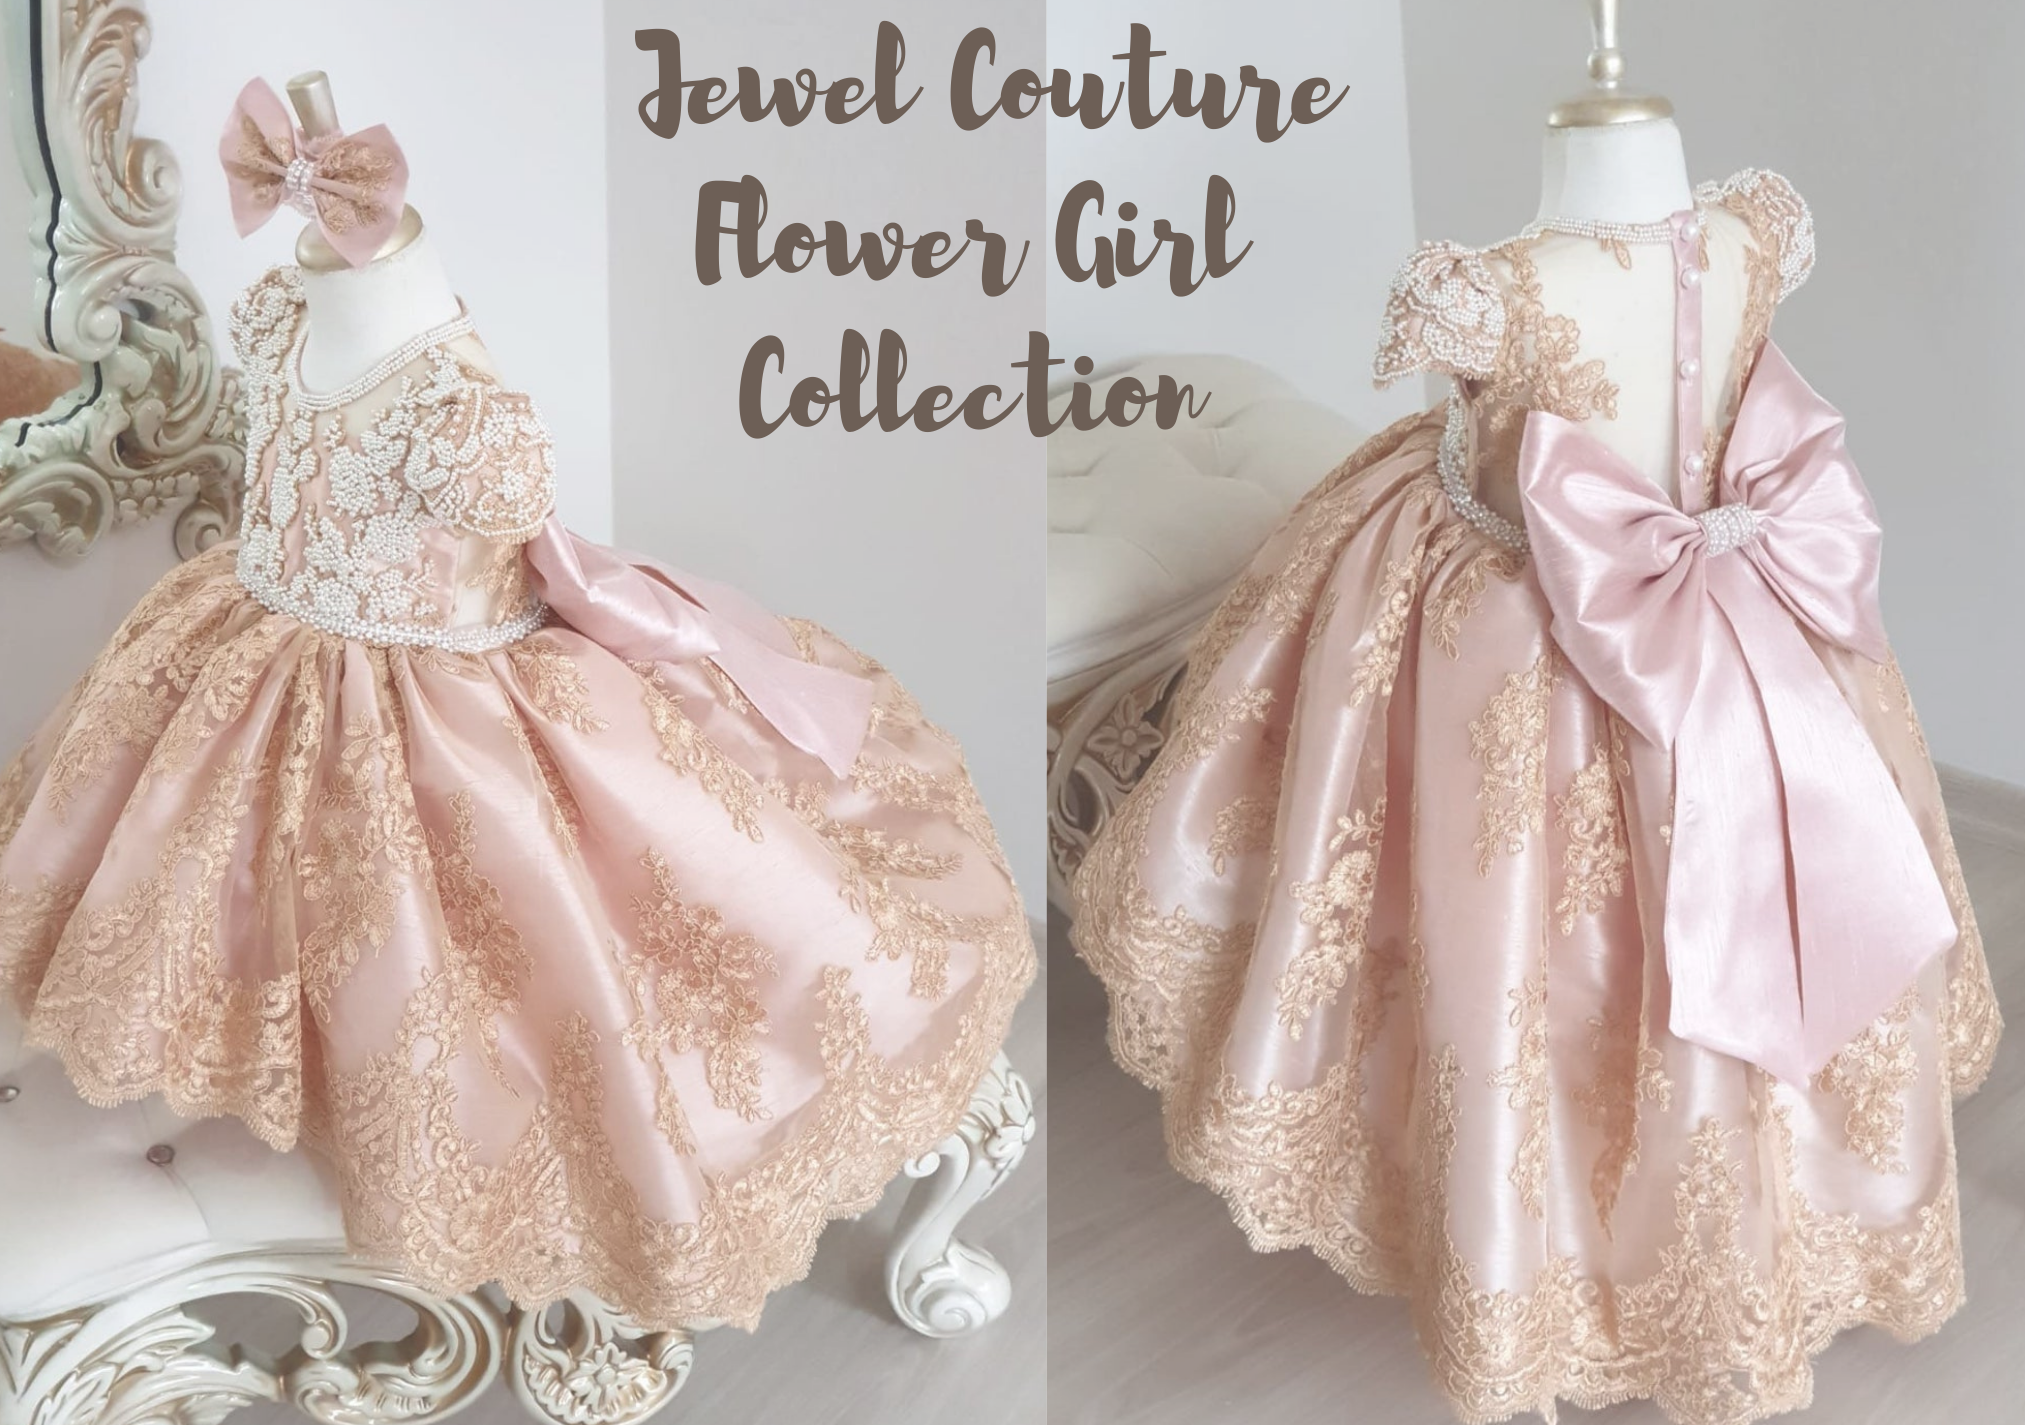 jewel-couture-4-.png